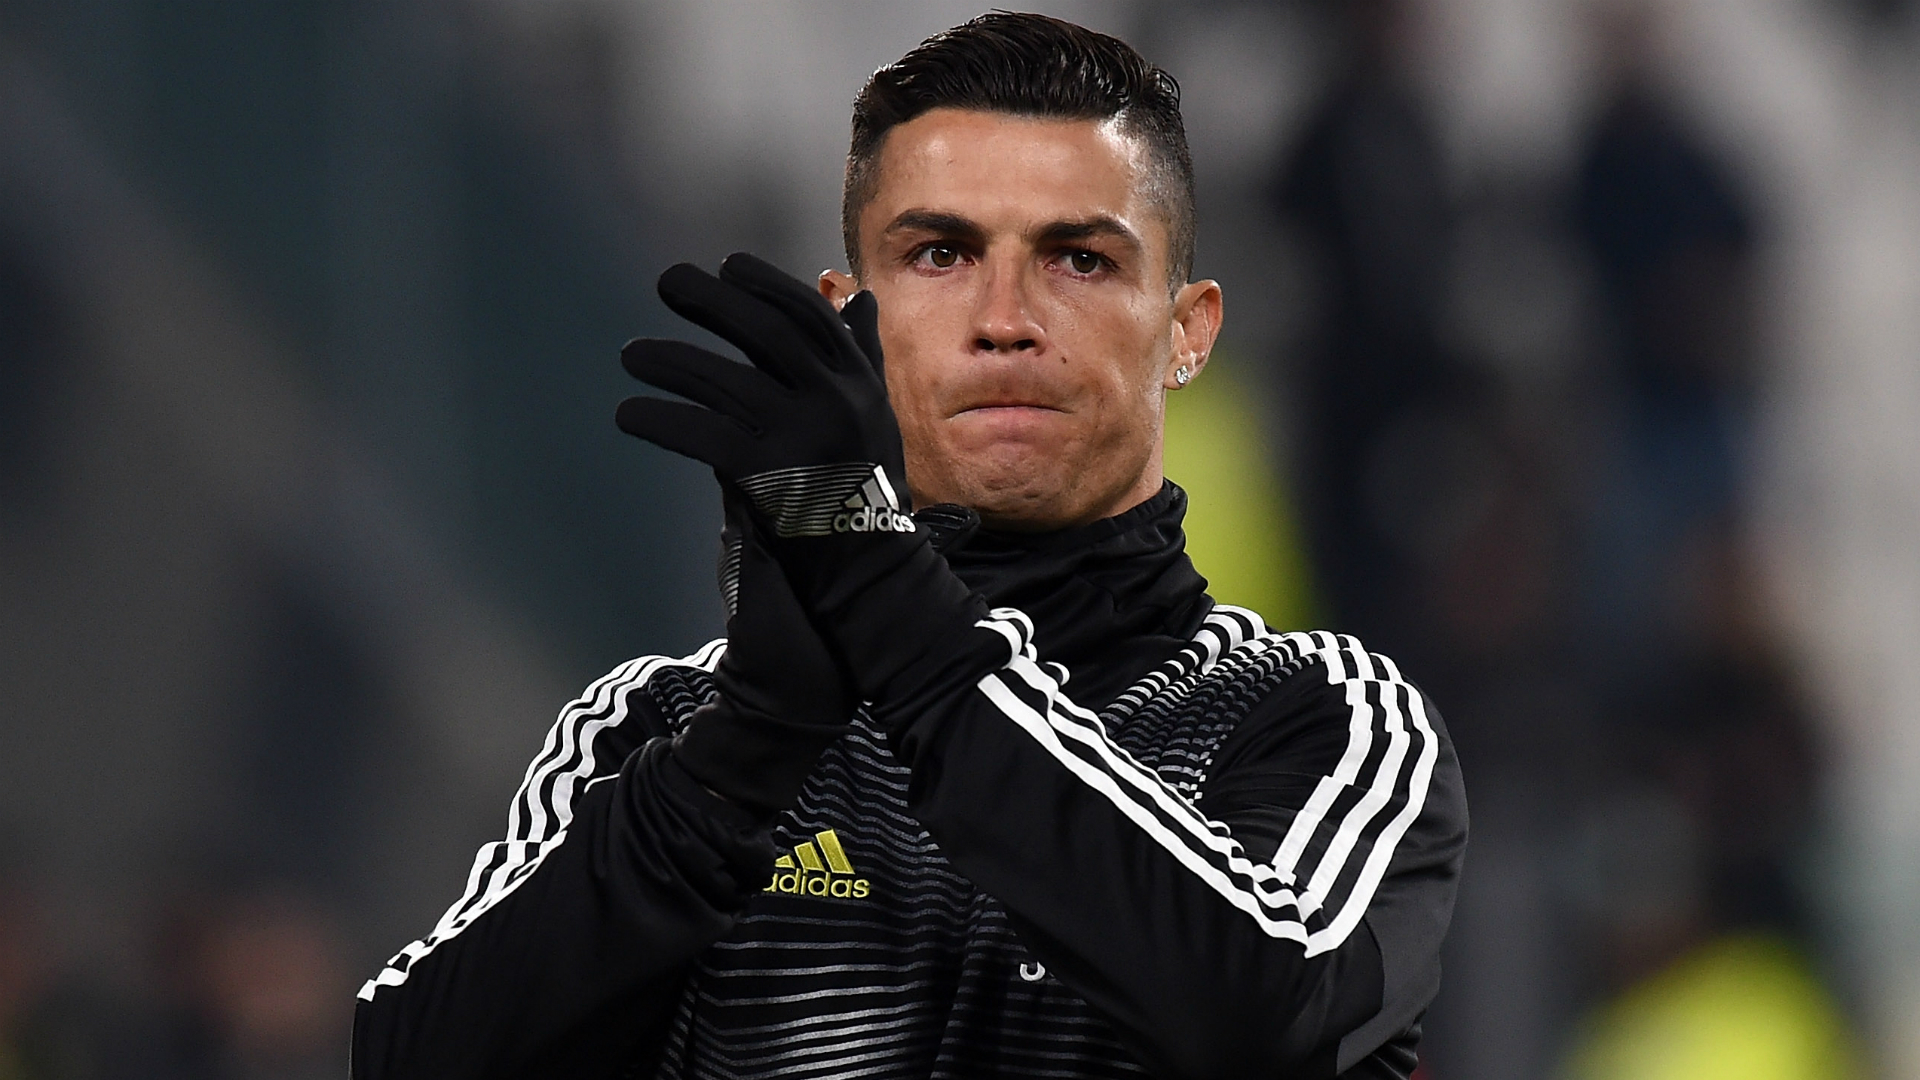 Ronaldo accepts prison sentence and €18.8m fine for tax fraud